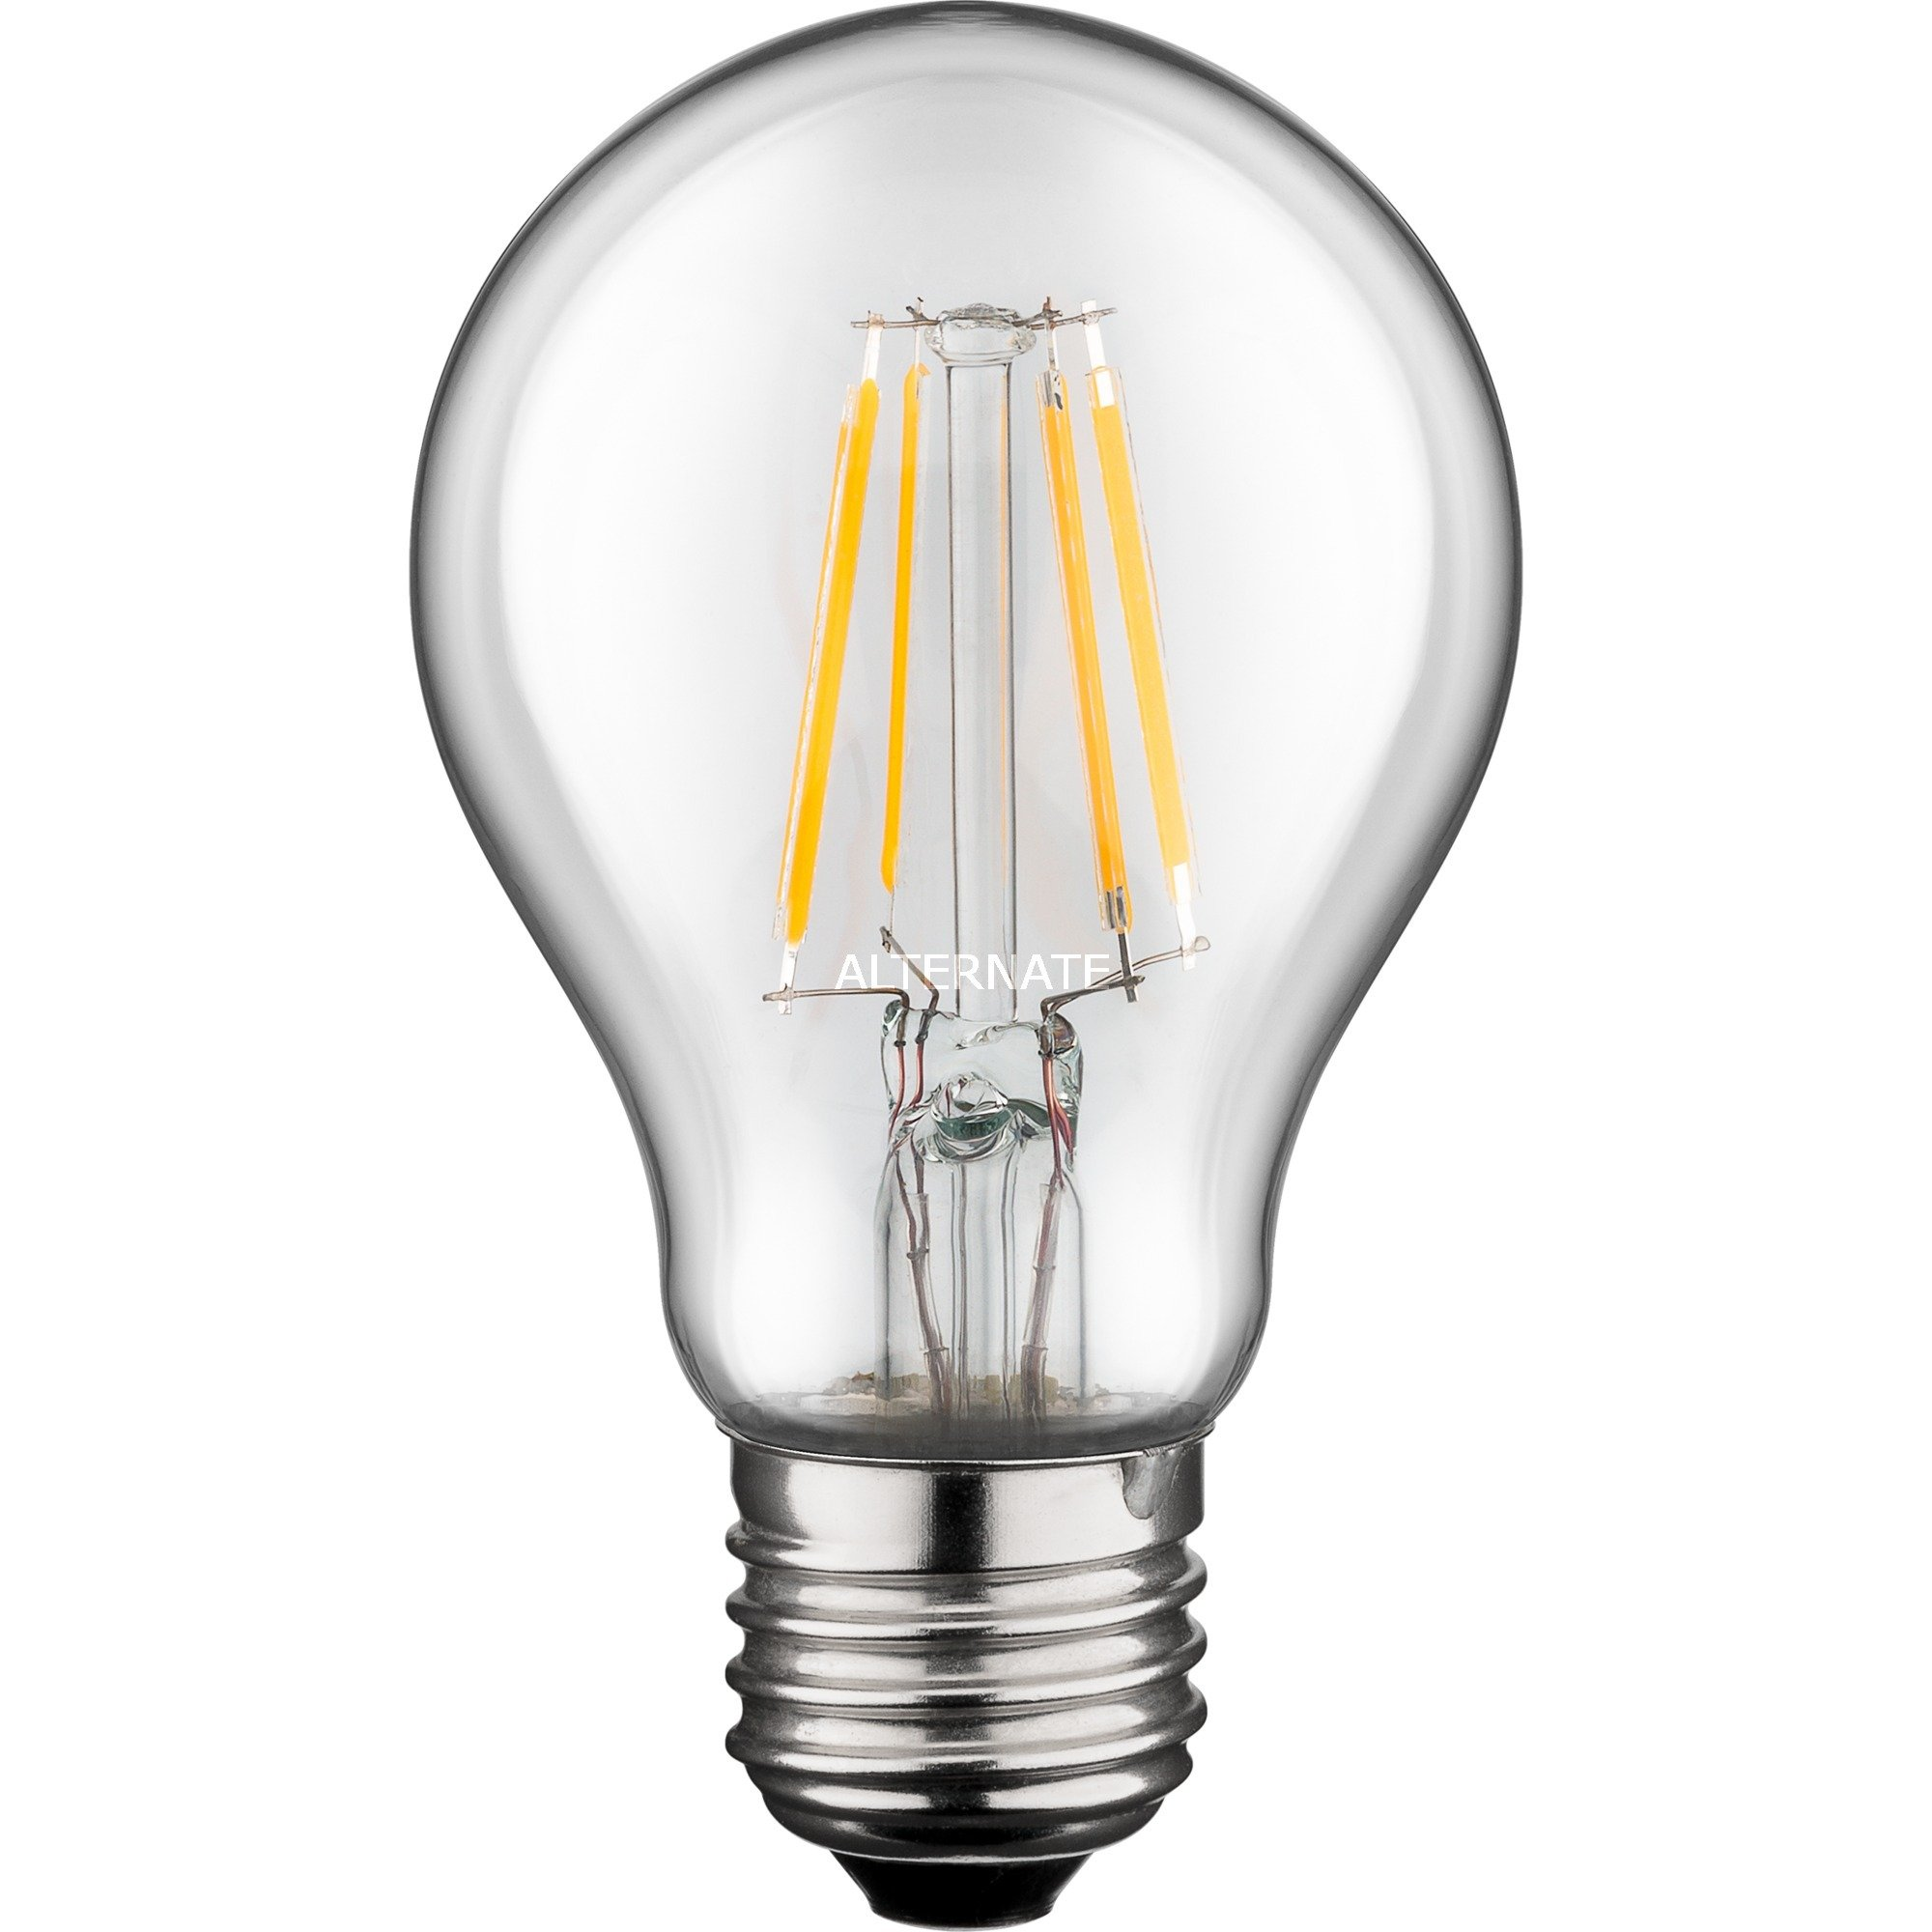 goobay LED Filament E27 Birne (44241), LED-Lampe - broschei